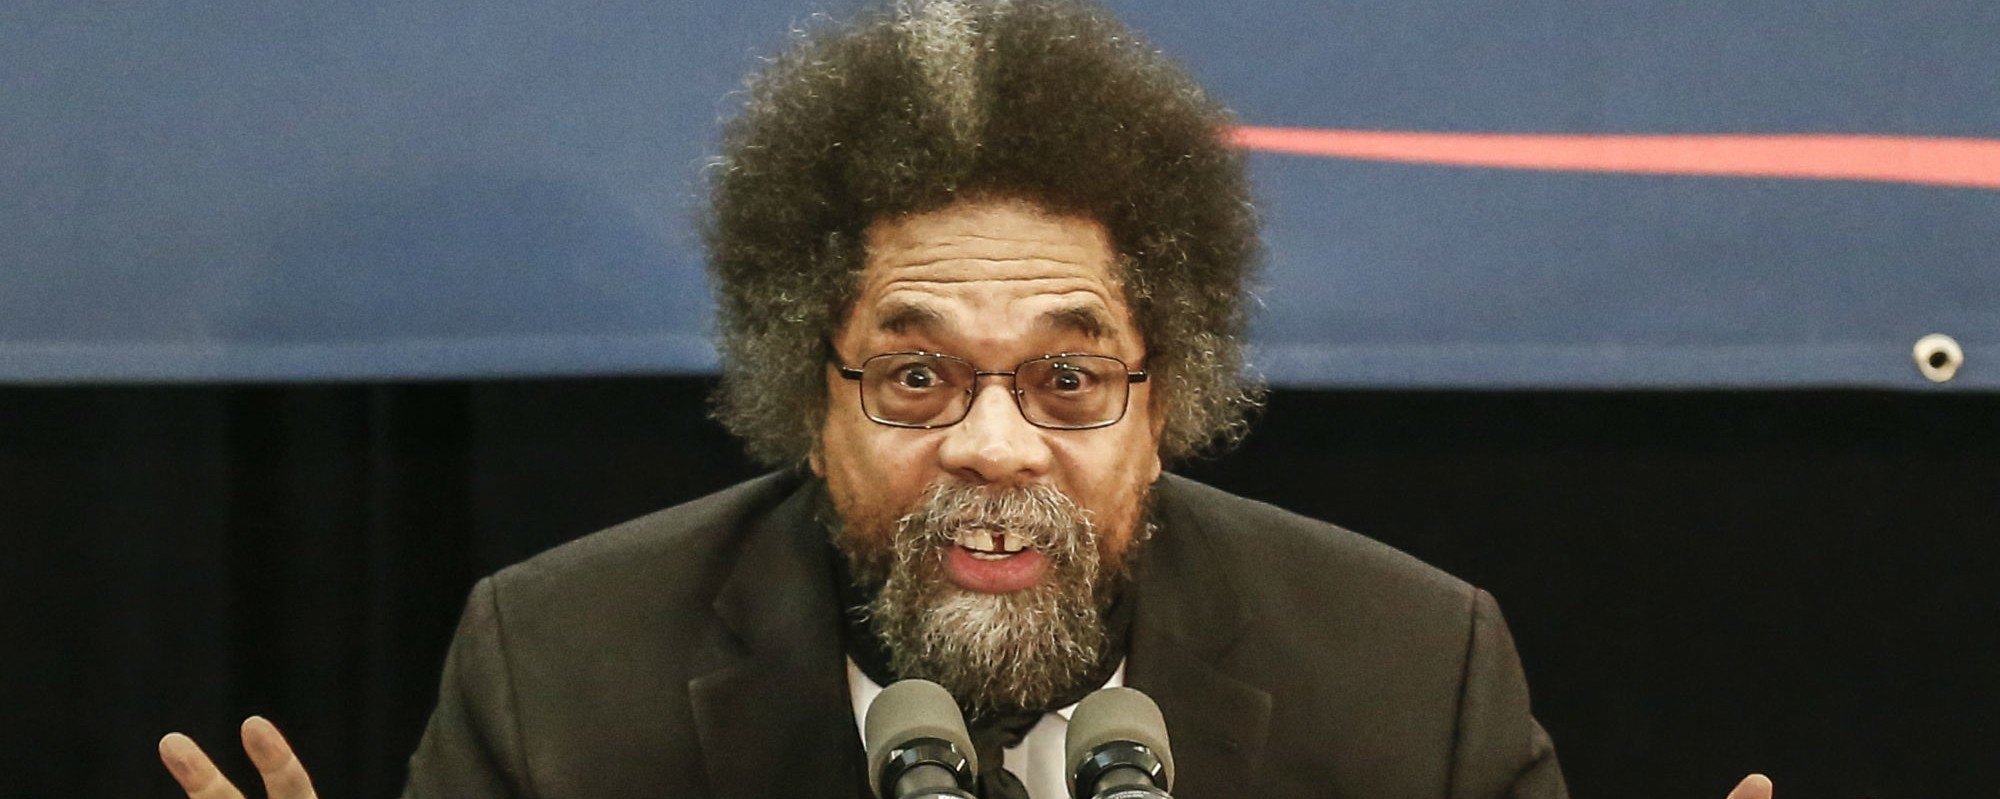 cornel west education Dr cornel ronald west is the scholar, civil rights activist and actor who plays councillor west in the matrix series further reading cornel west on wikipedia.